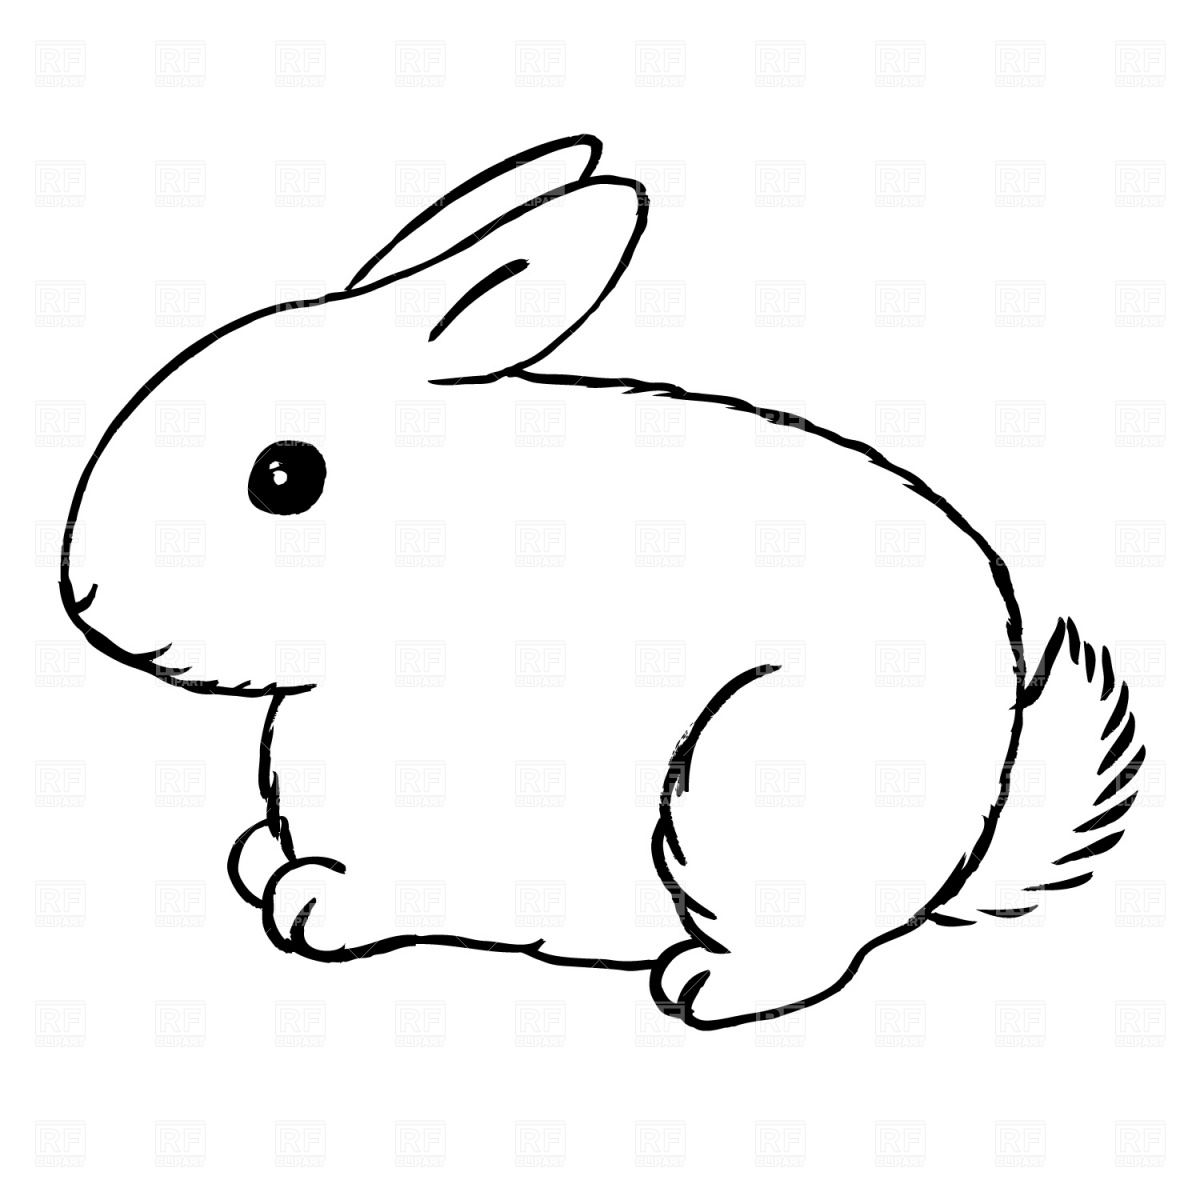 Bunny black and white cute rabbit clipart black and white.